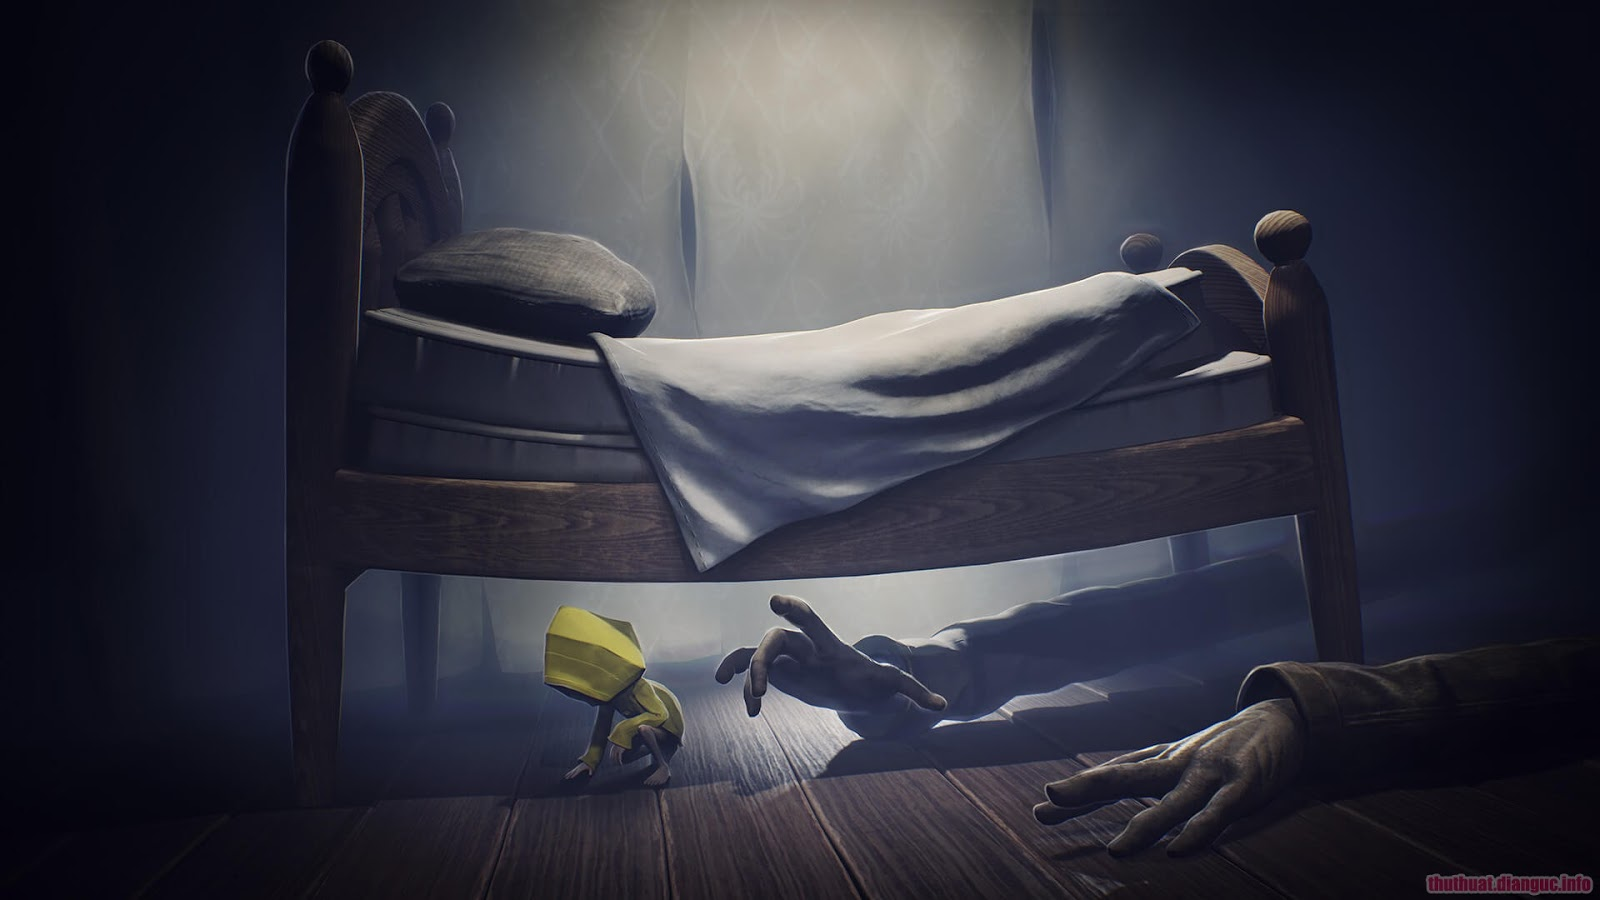 Download Game Little Nightmares Full Crack, Little Nightmares Full Chapter, Little Nightmares Full Chapter free download, Game Little Nightmares, Game Little Nightmares free download, Little Nightmares